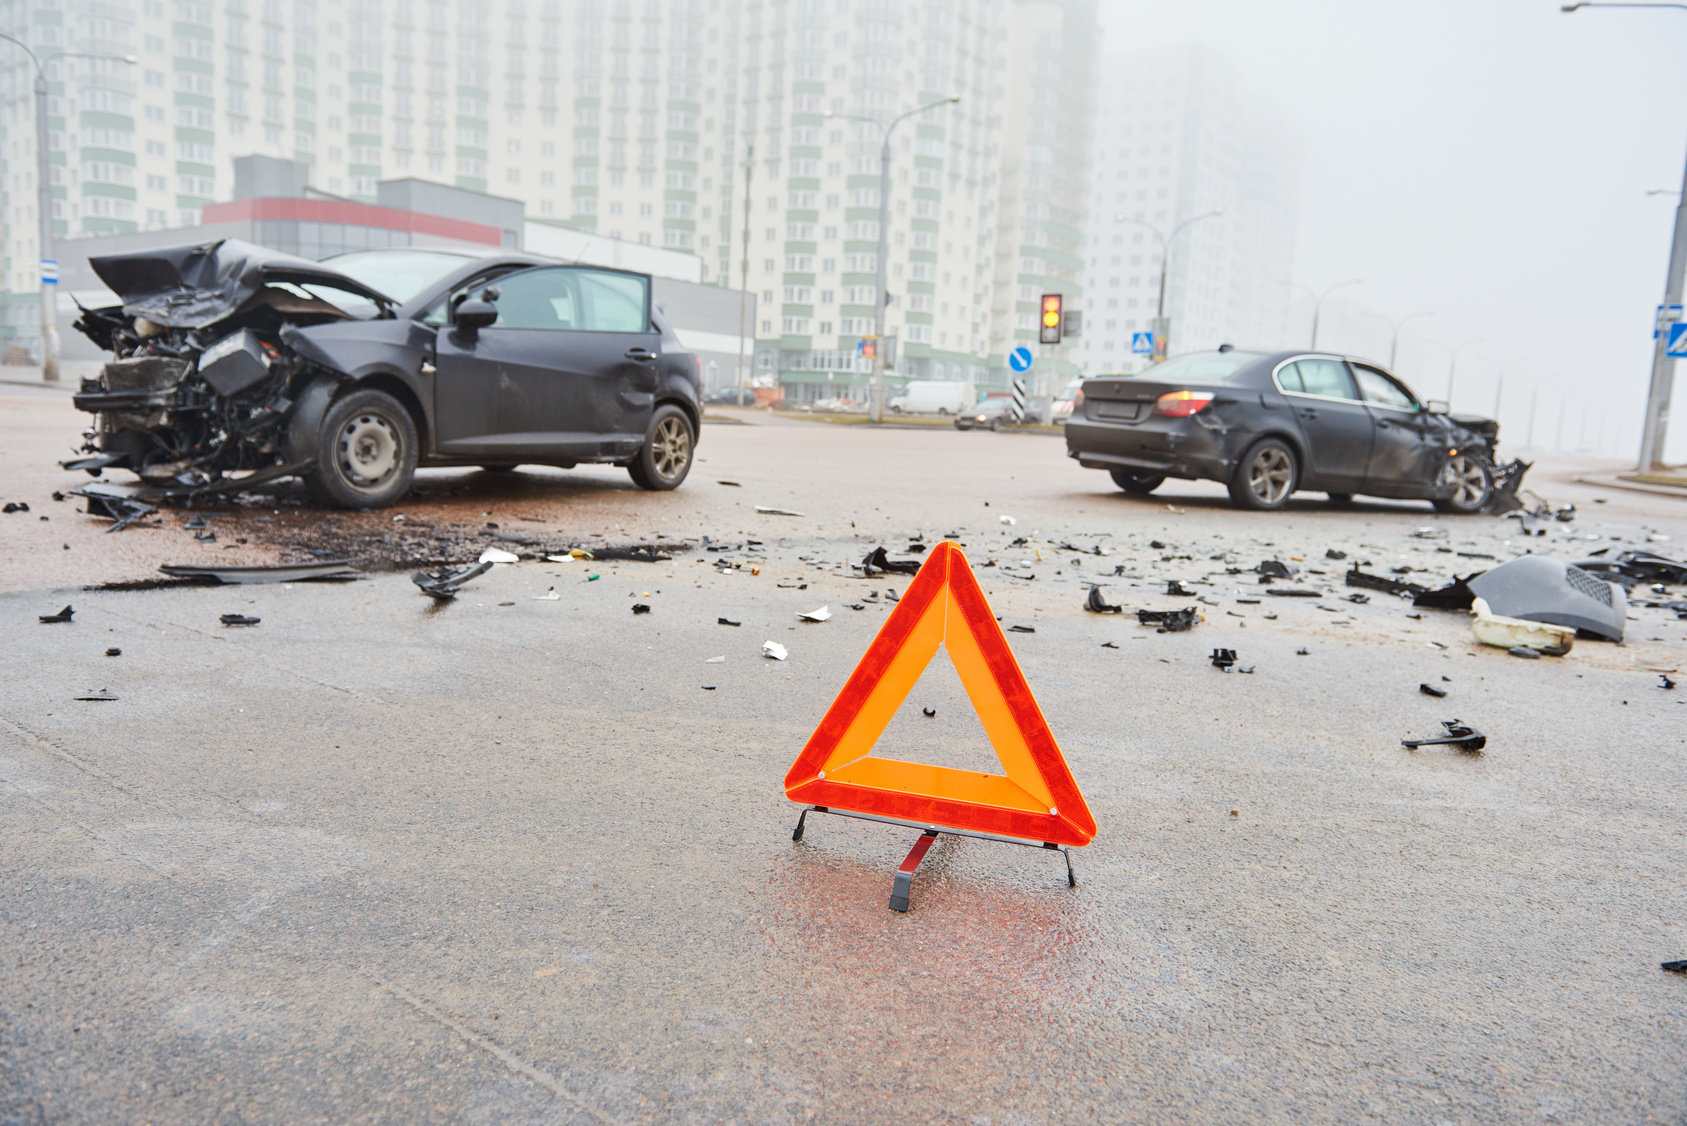 two car crash with injuries and if you need a personal injury attorney in Flint look here.